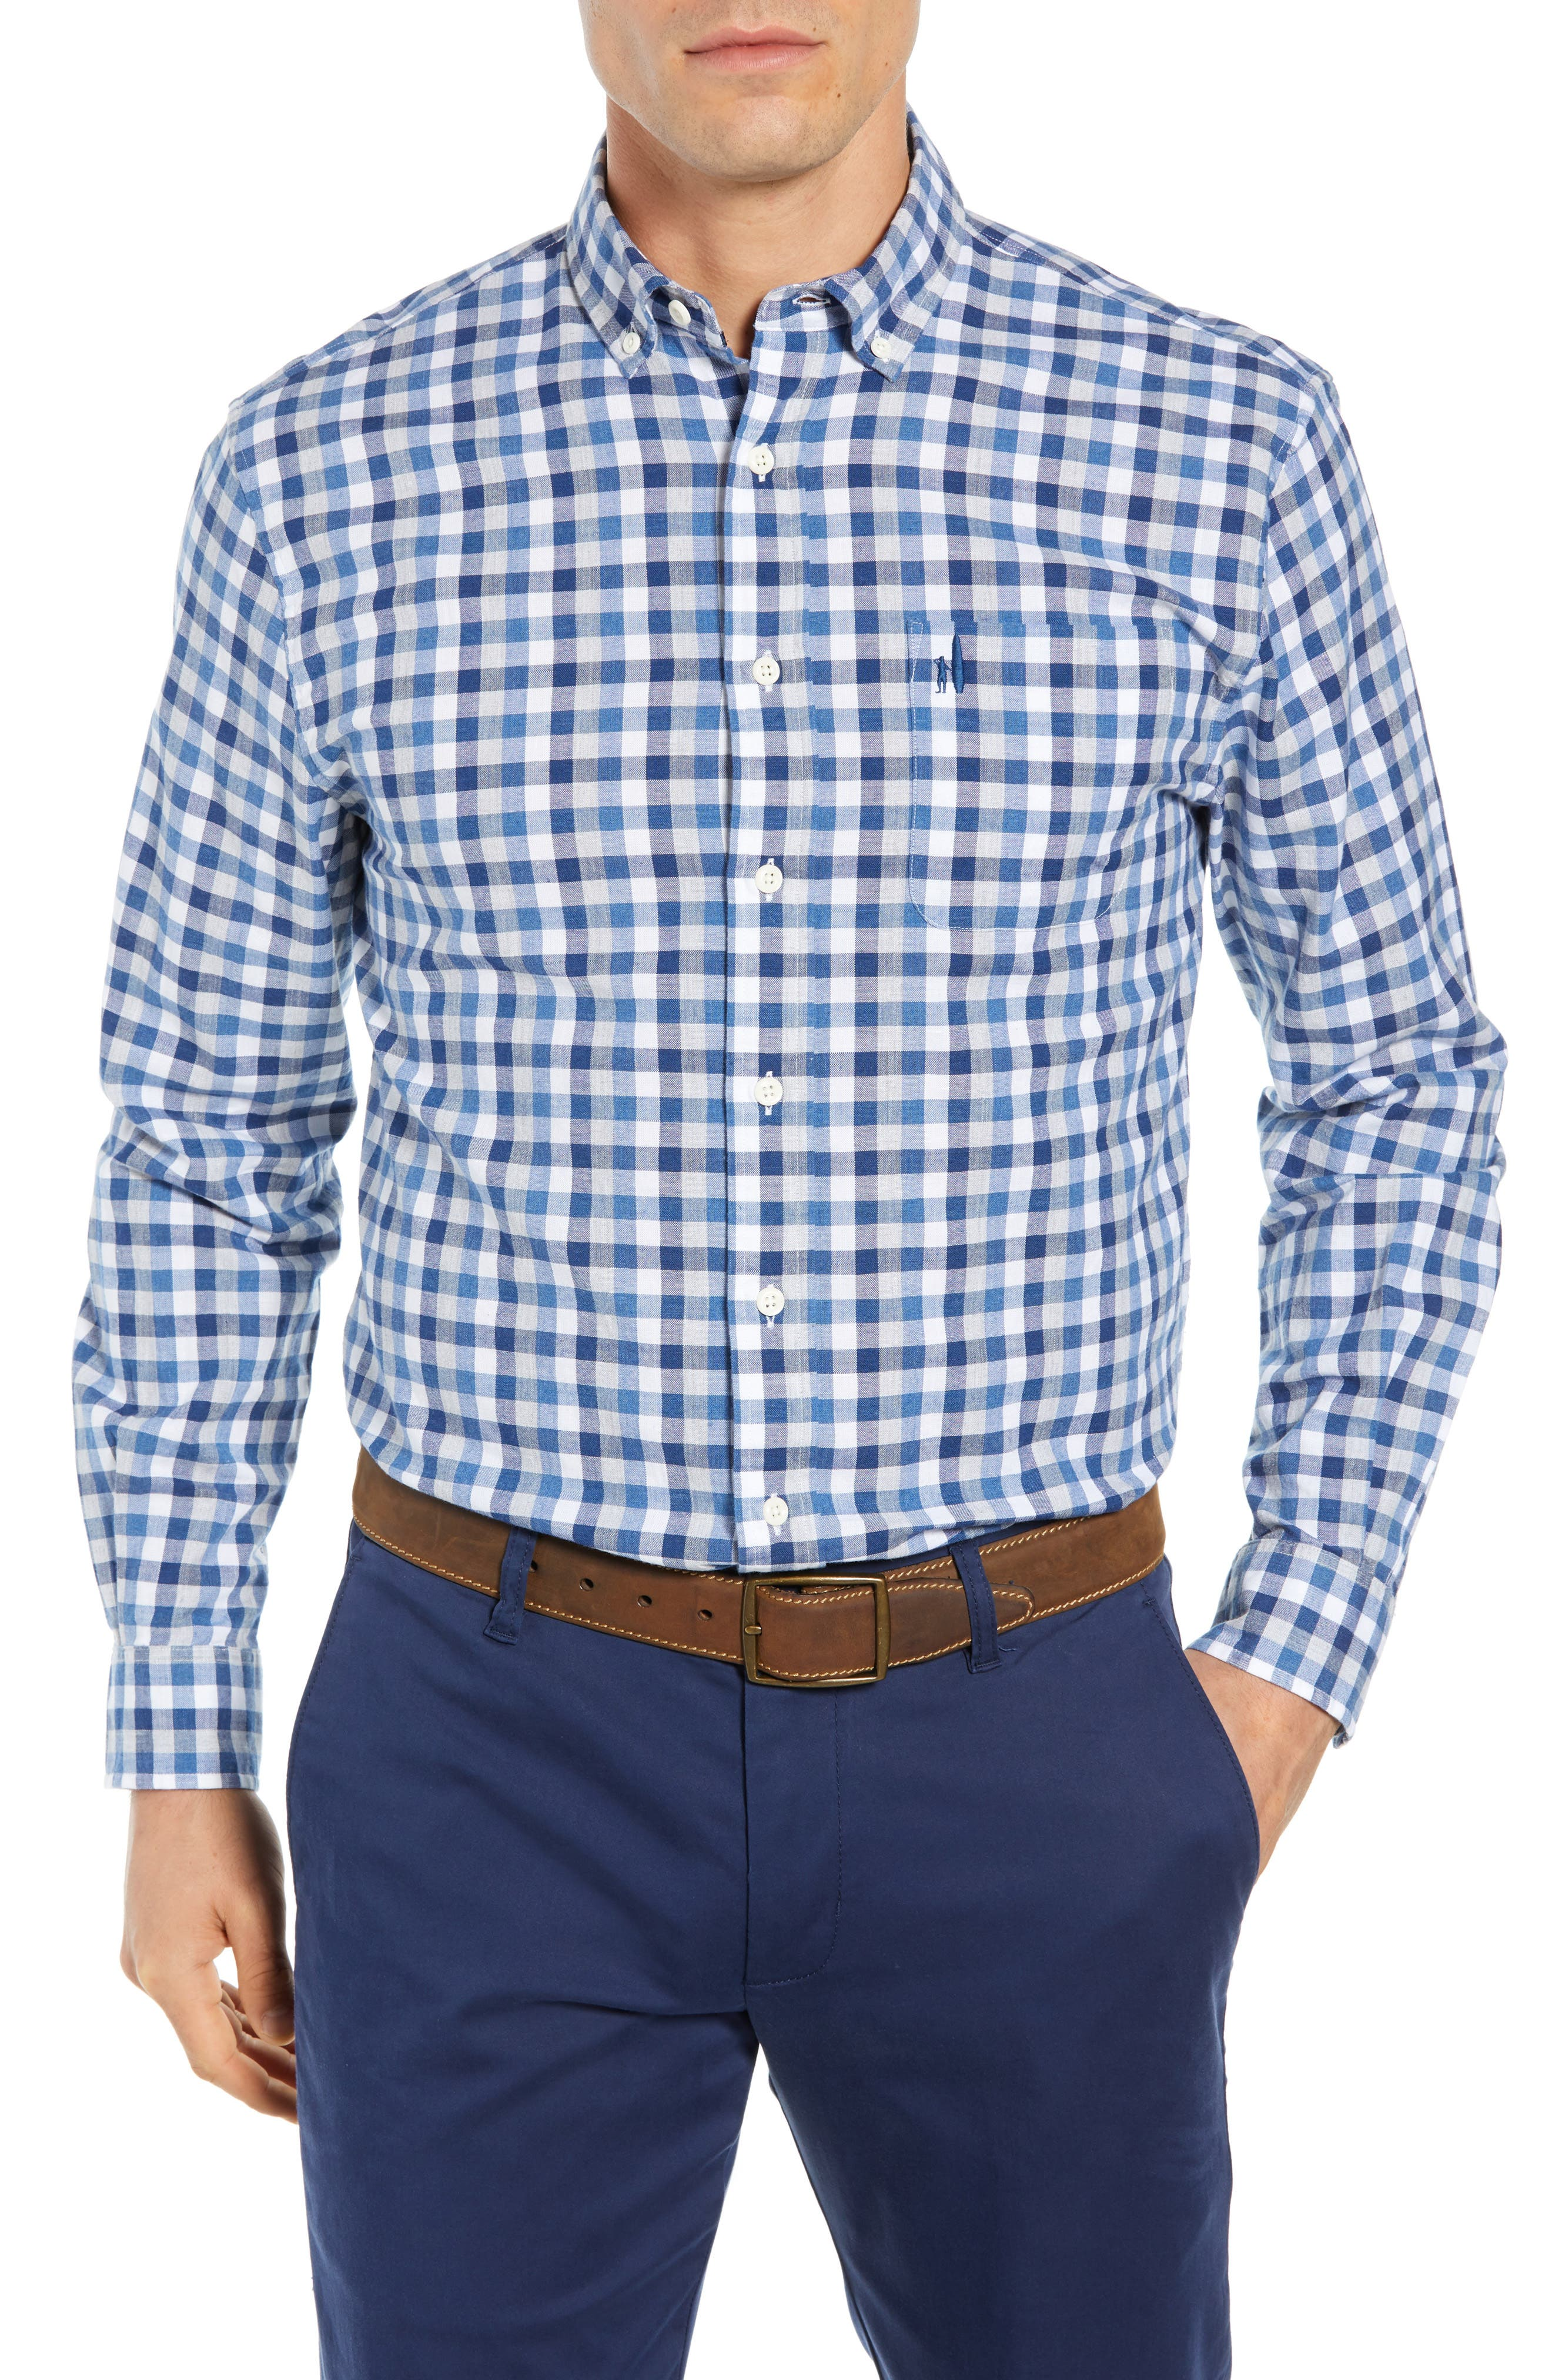 Arthur Classic Fit Sport Shirt,                         Main,                         color, MIDNIGHT